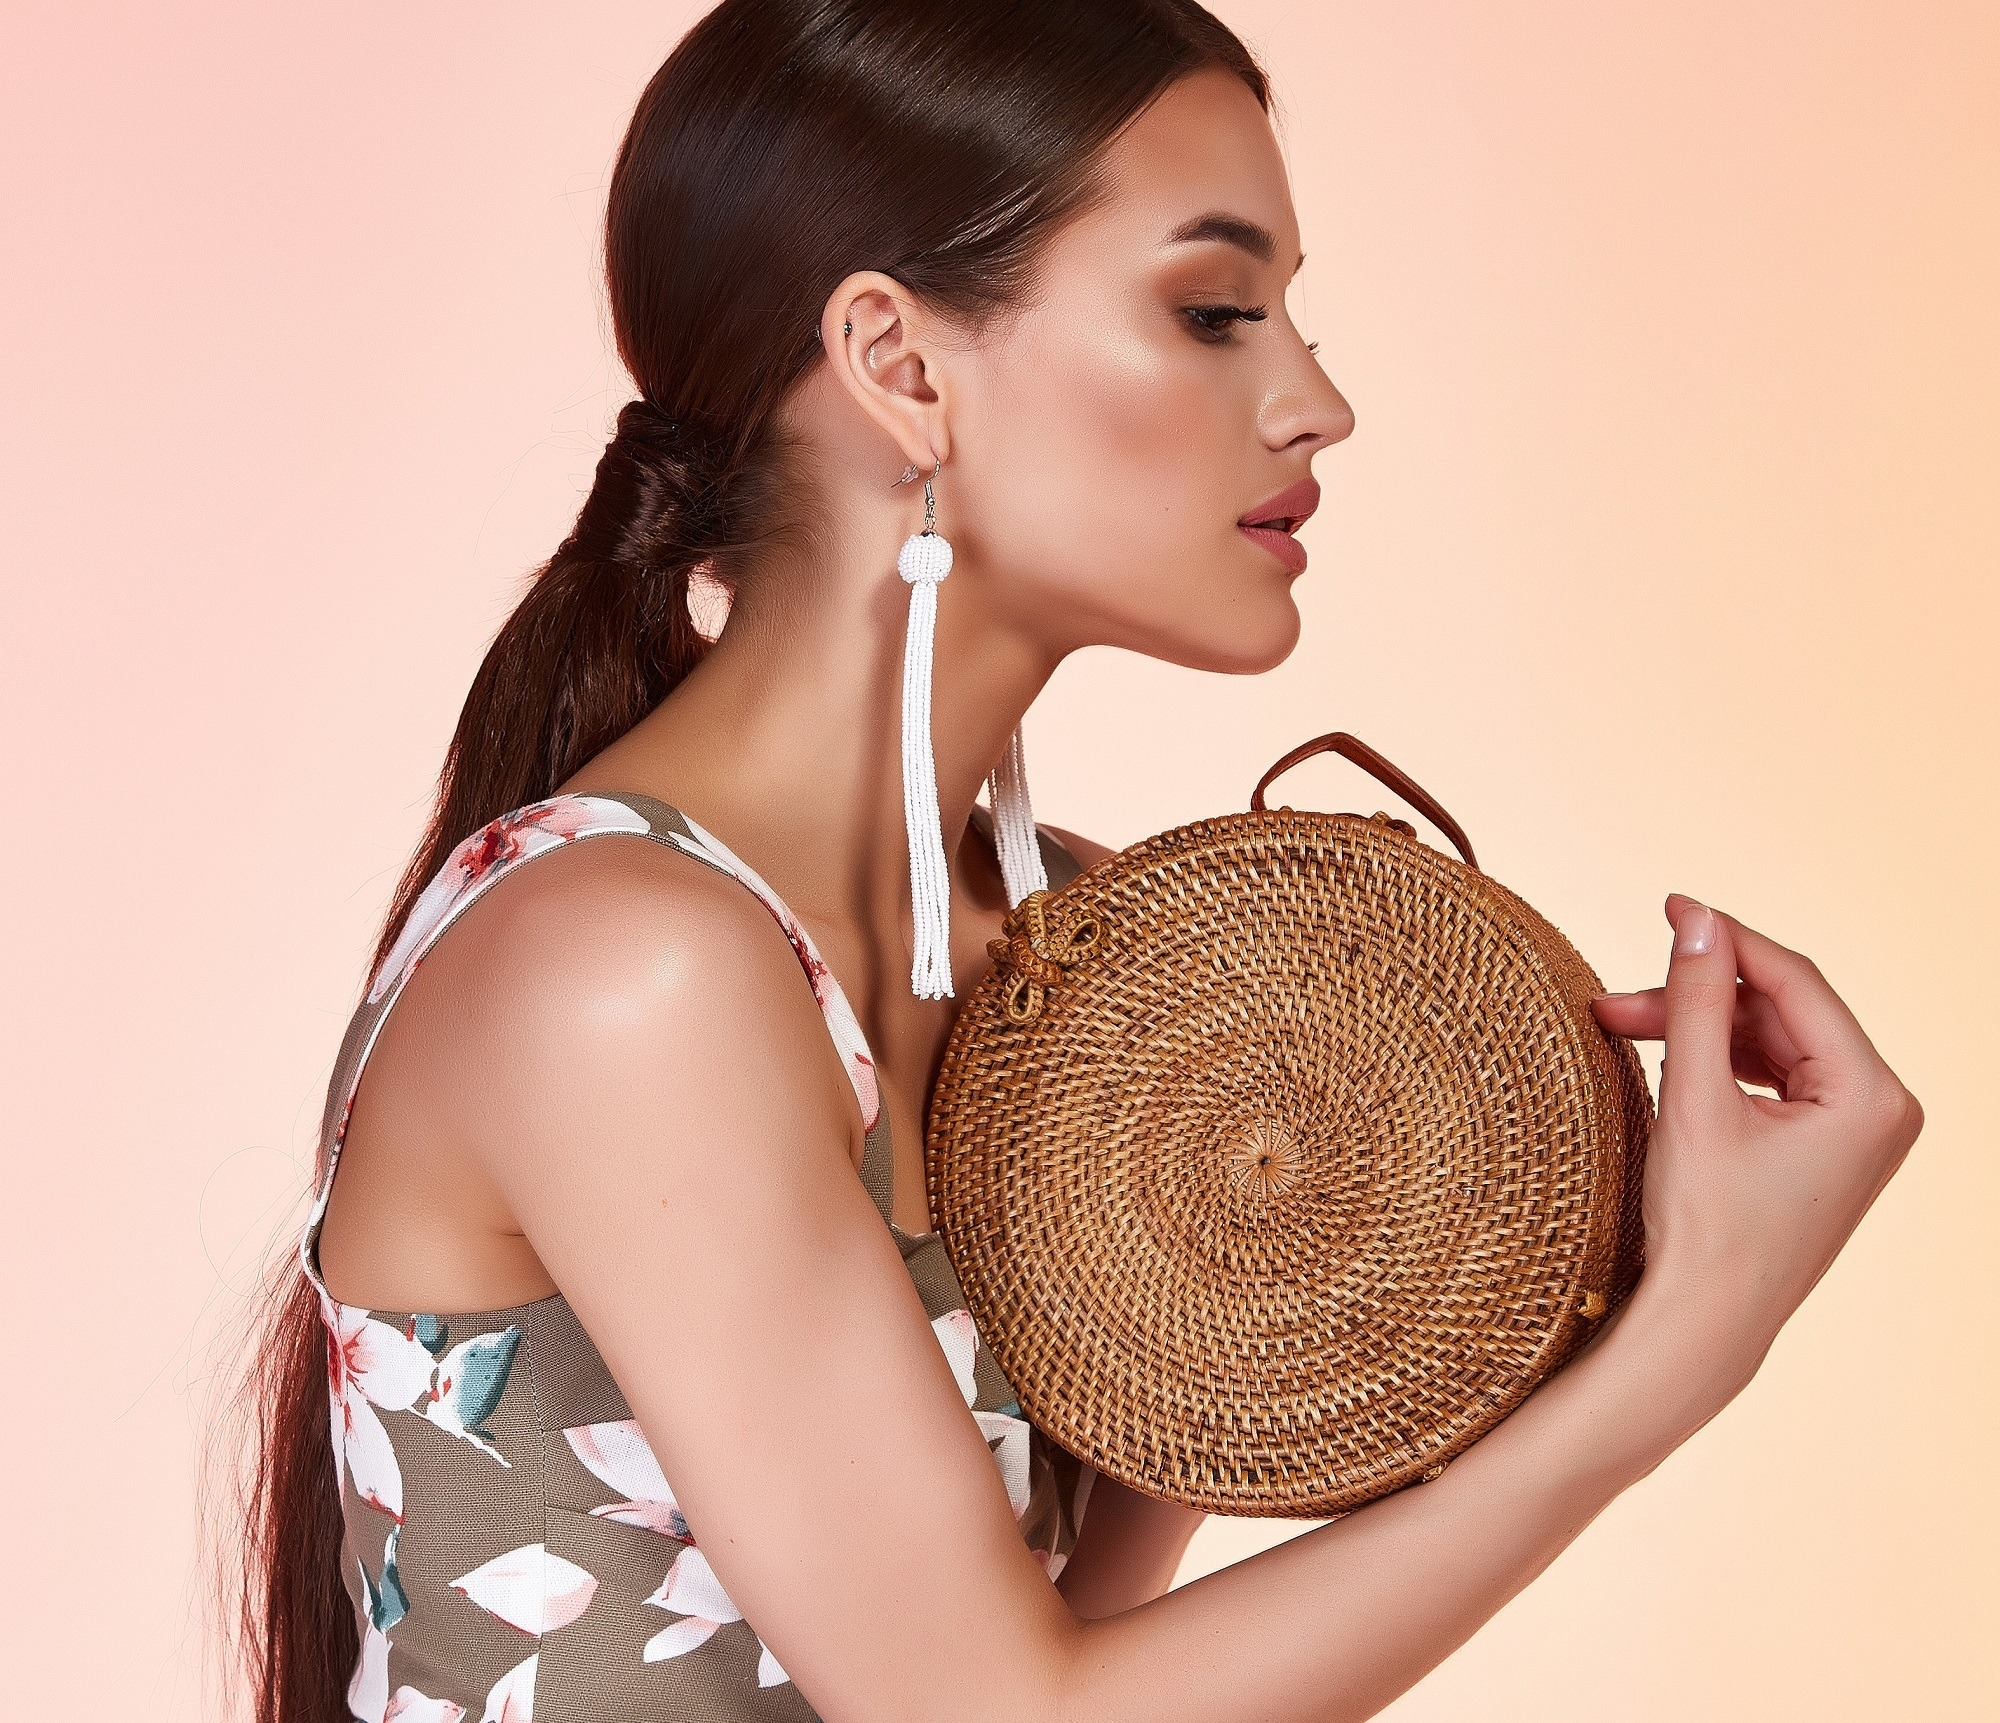 Hair trends to try in 2019: Side view shot of a woman with long dark hair in a low ponytail wearing a sleeveless top and dangling earrings